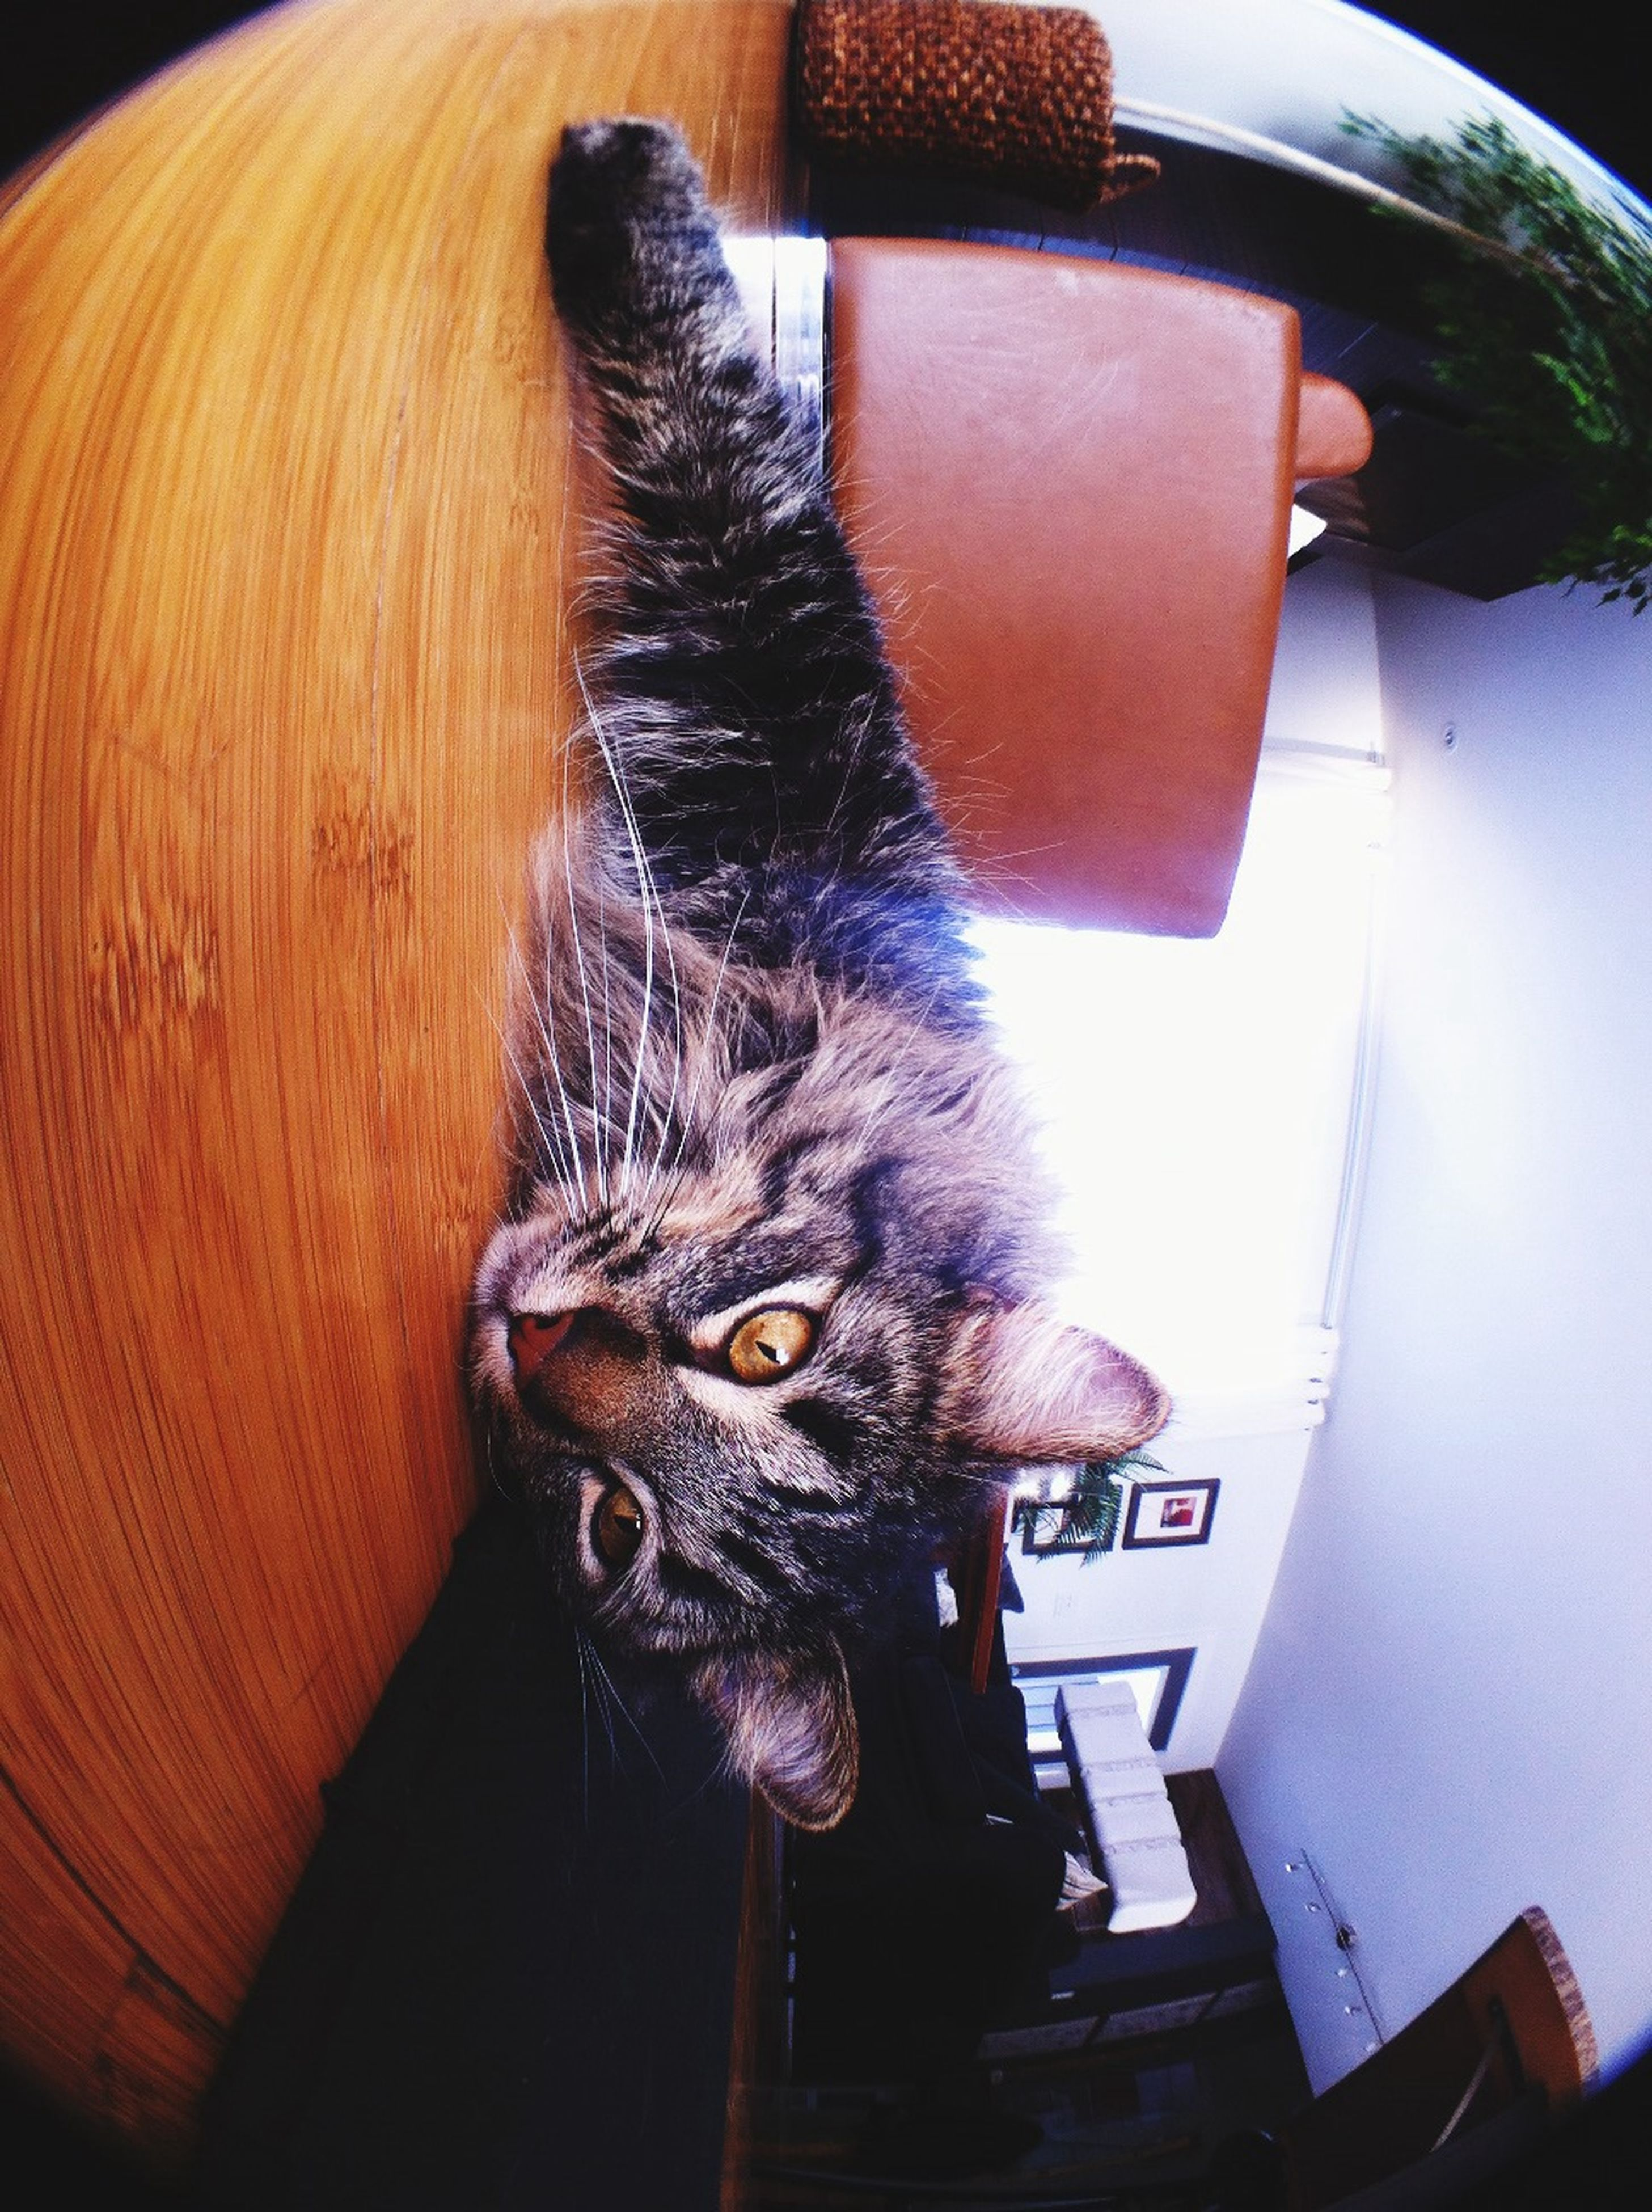 pets, domestic animals, domestic cat, cat, indoors, one animal, mammal, animal themes, feline, looking at camera, portrait, whisker, relaxation, home interior, sitting, close-up, alertness, front view, resting